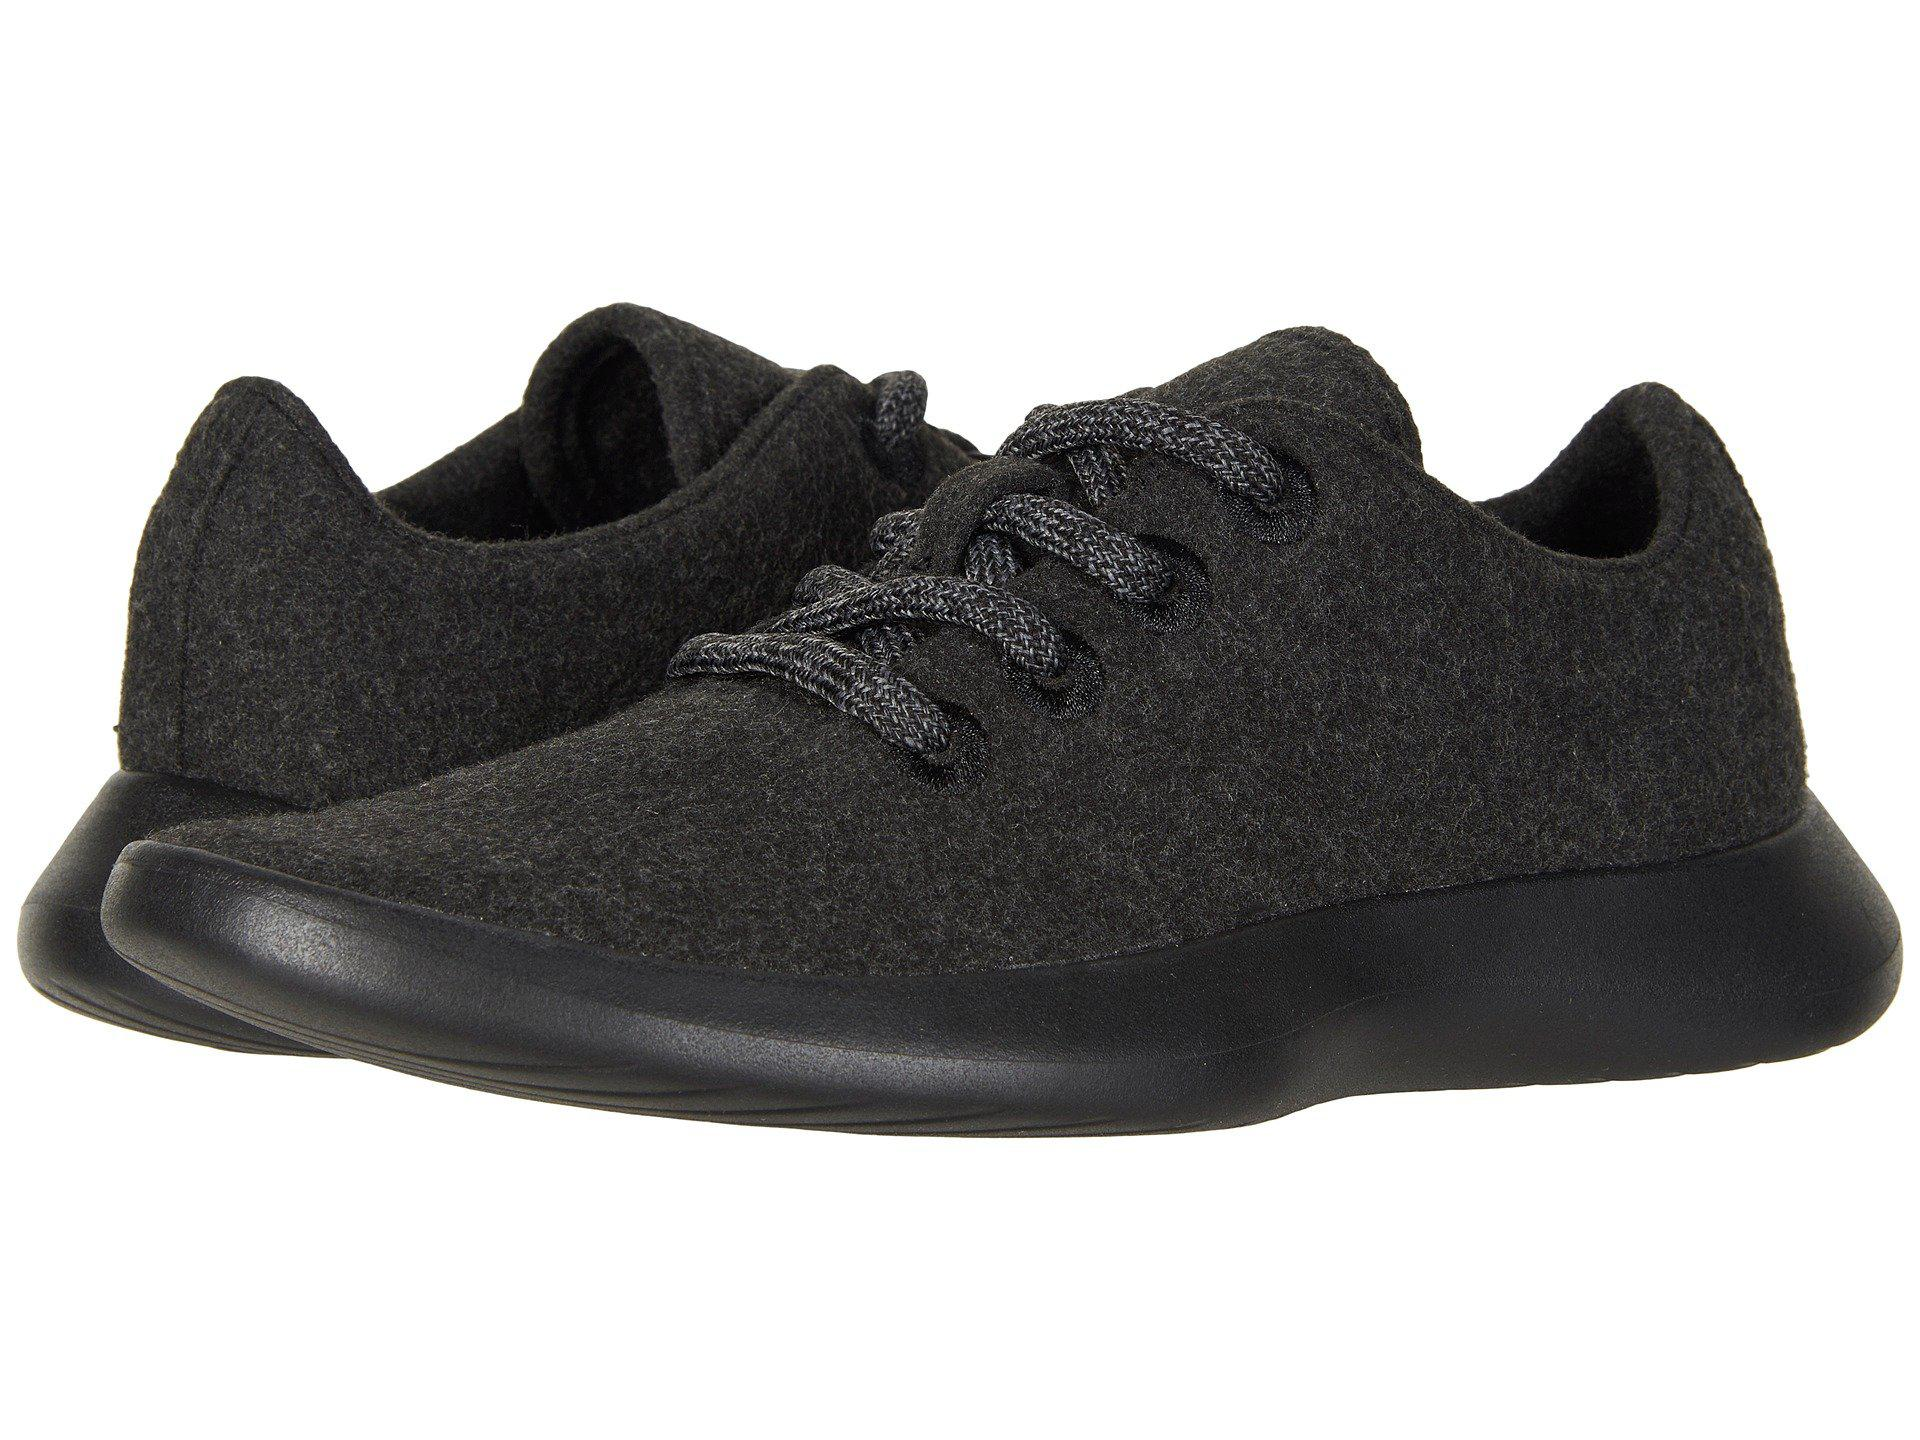 Steven by Steve Madden. Men's Black Traveler Sneaker